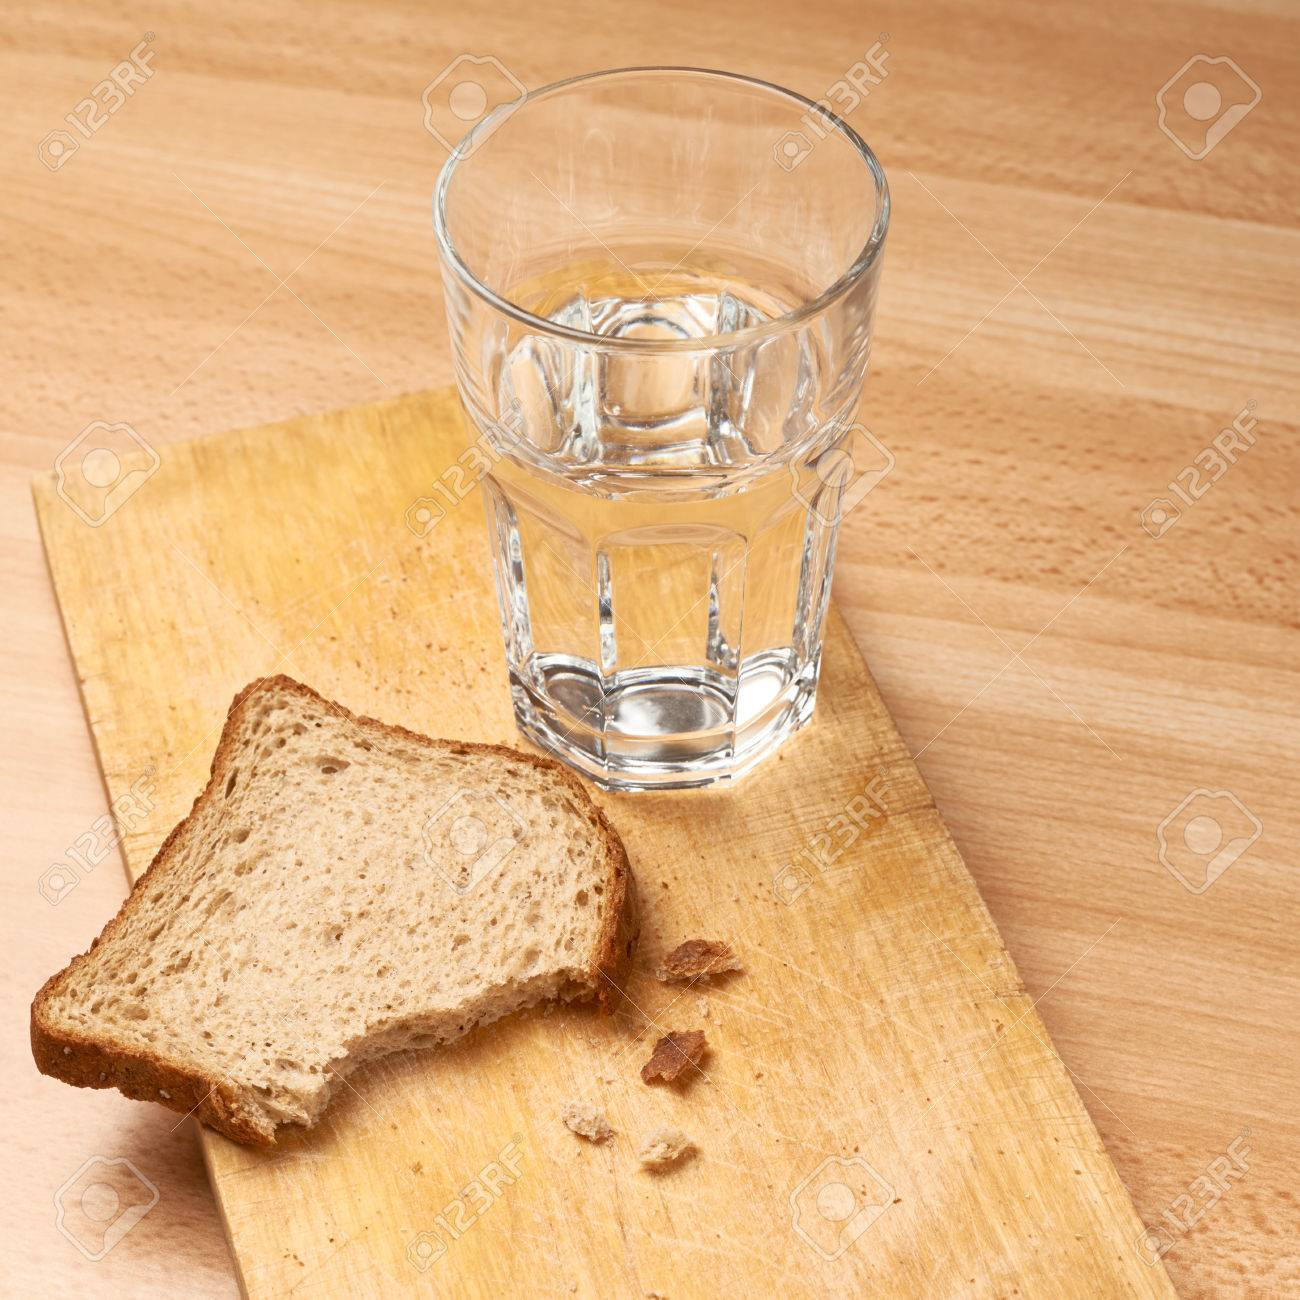 Glass Of Water And Bread Composition Over The Wooden Surface Stock Photo Picture And Royalty Free Image Image 29060880